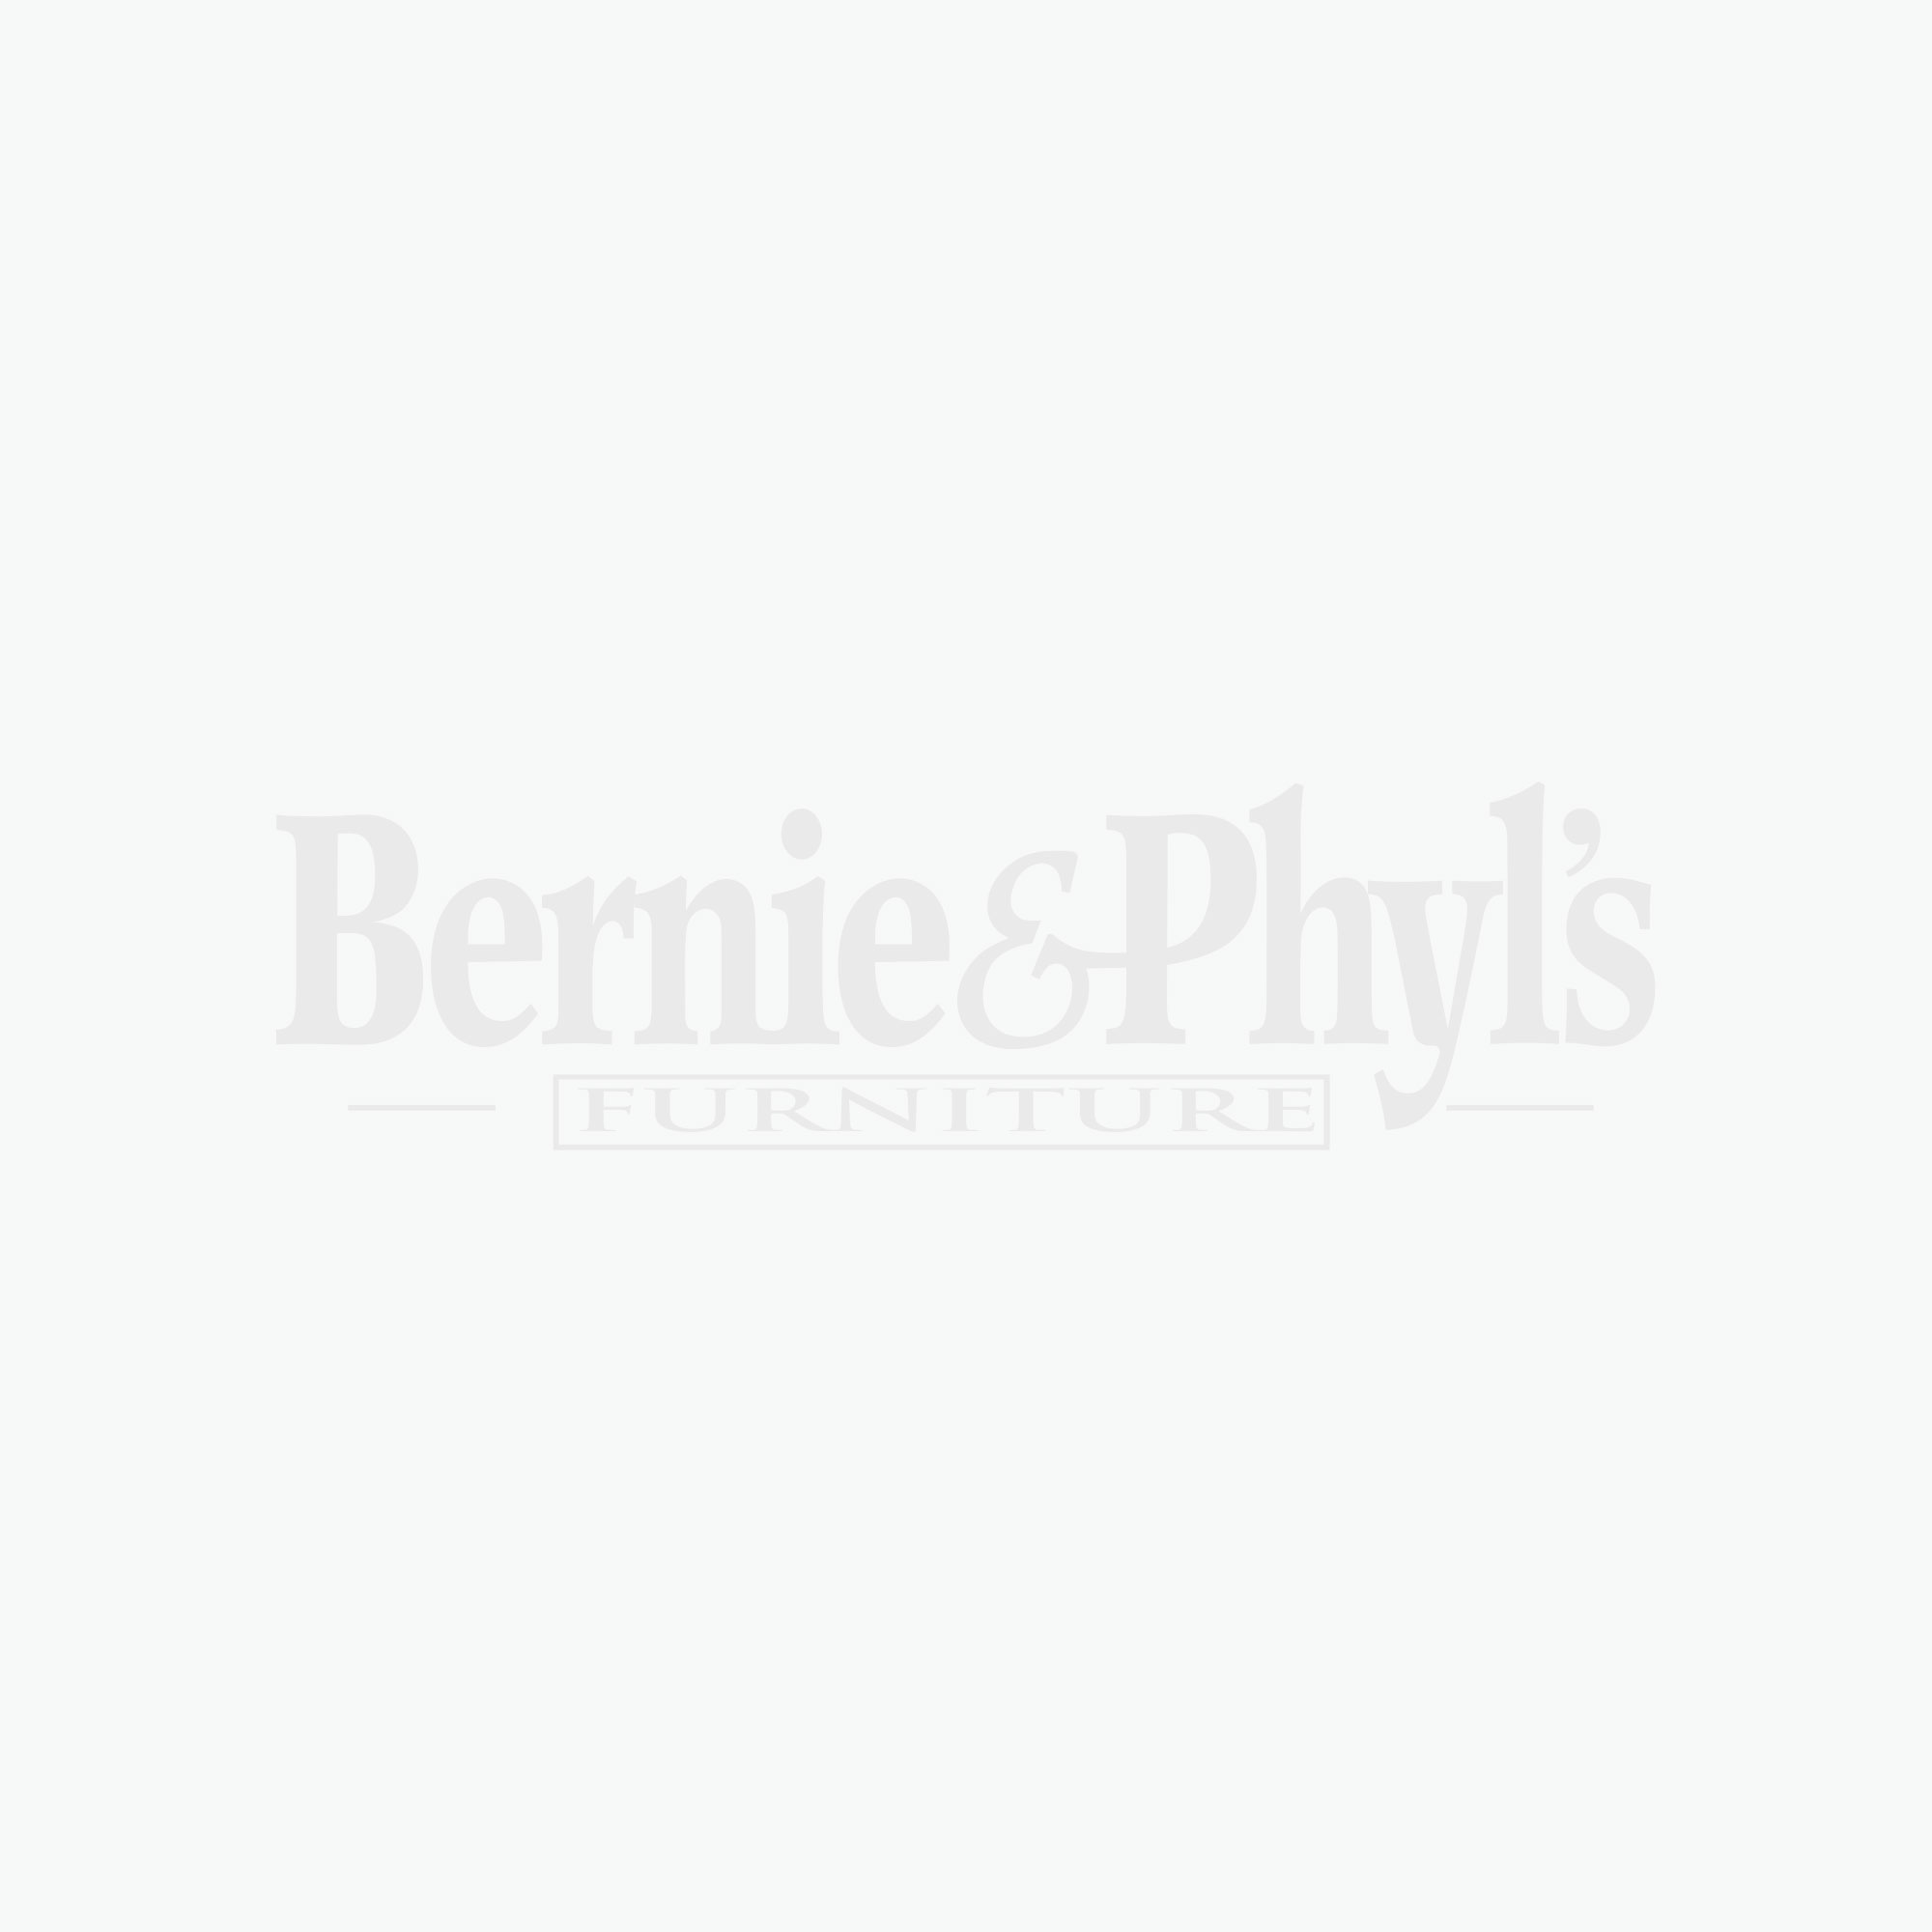 Lettner Twin Full Bunk Bed Bernie Phyl S Furniture By Ashley Furniture